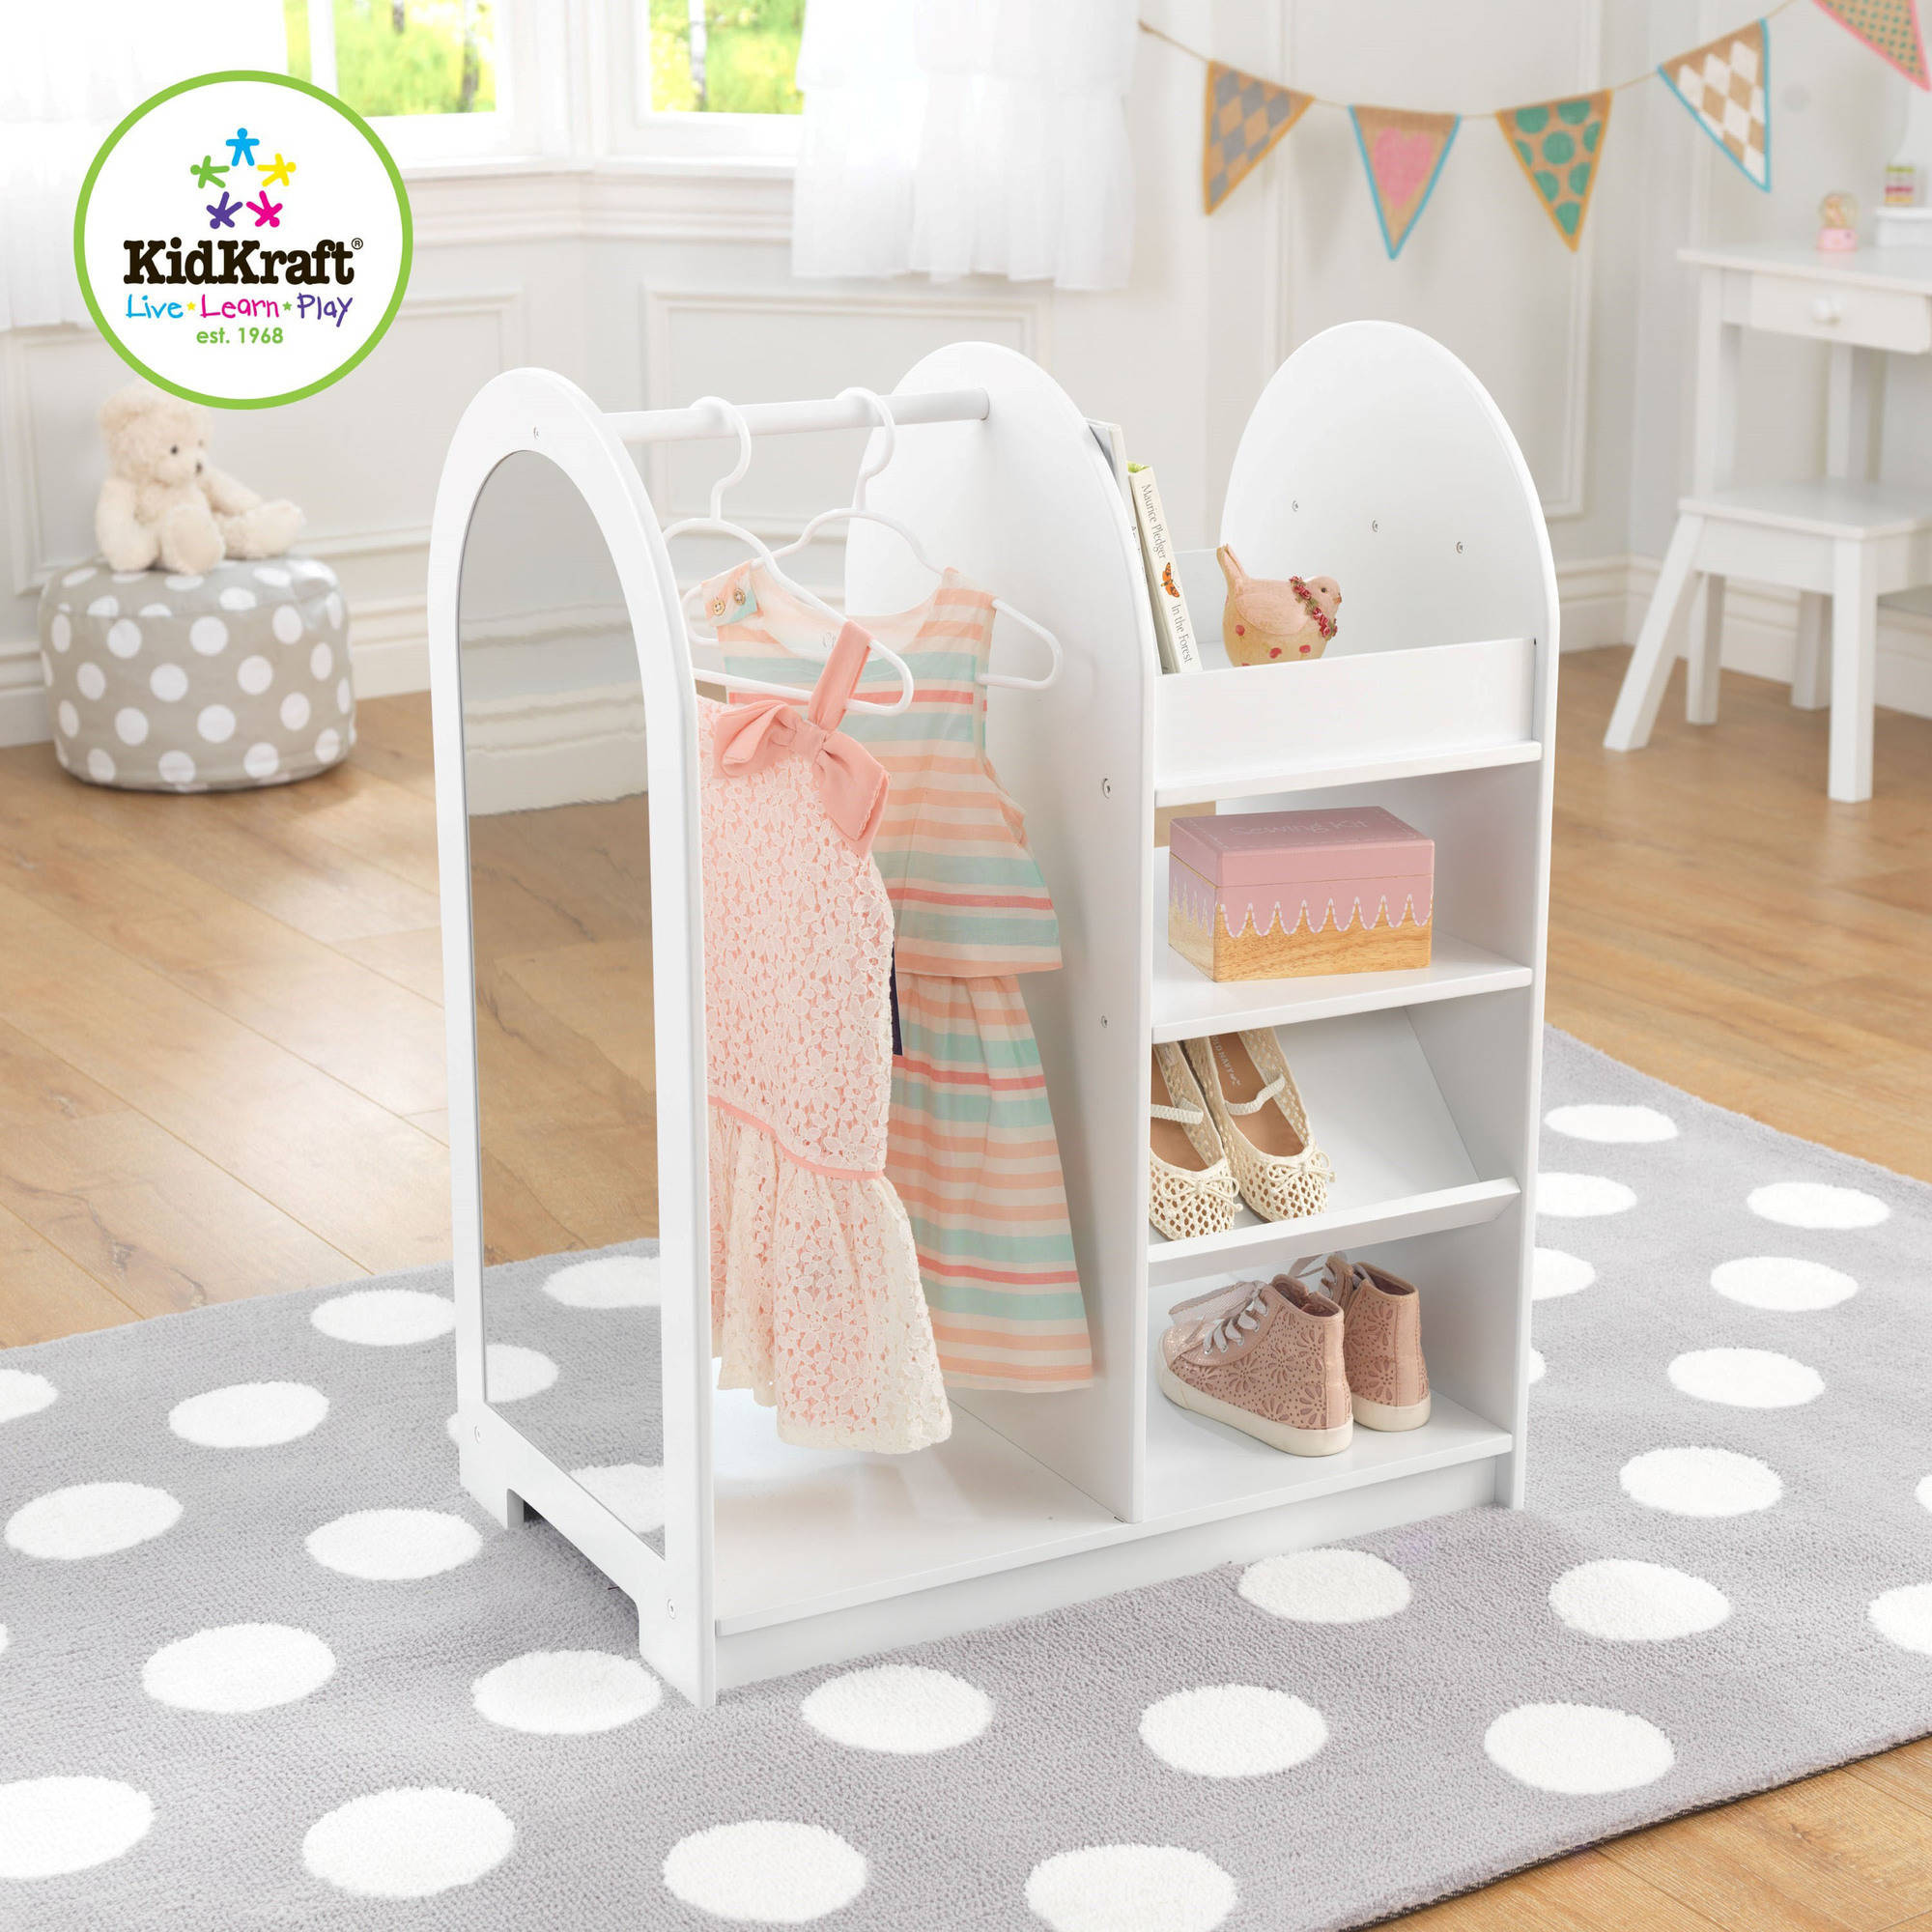 KidKraft Let's Play Dress Up Unit, White